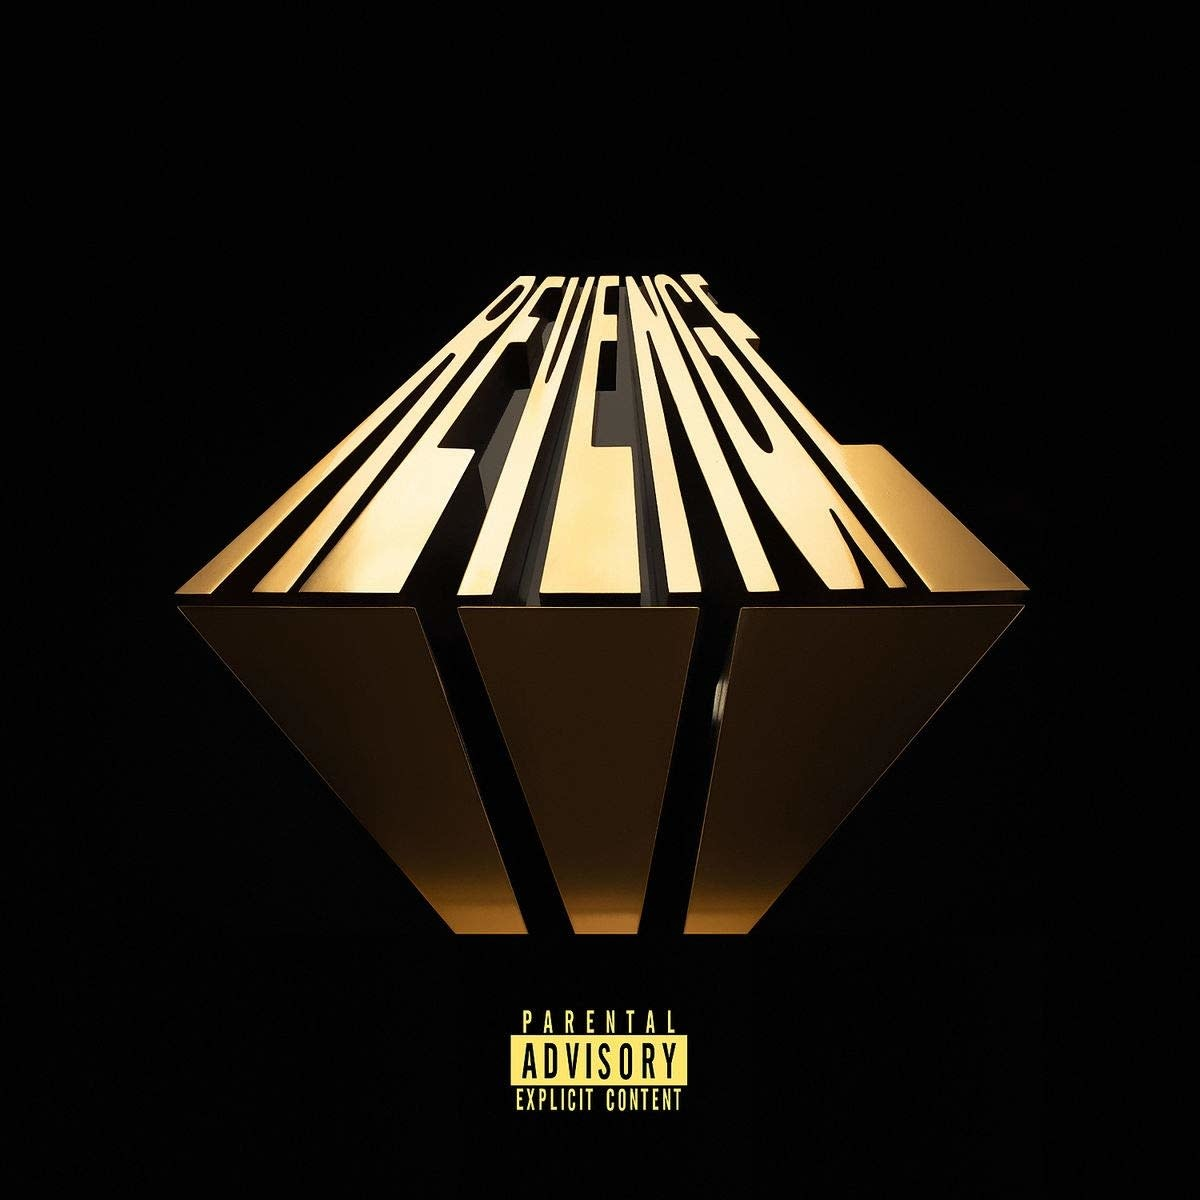 Dreamville & J. Cole - Revenge Of The Dreamers III